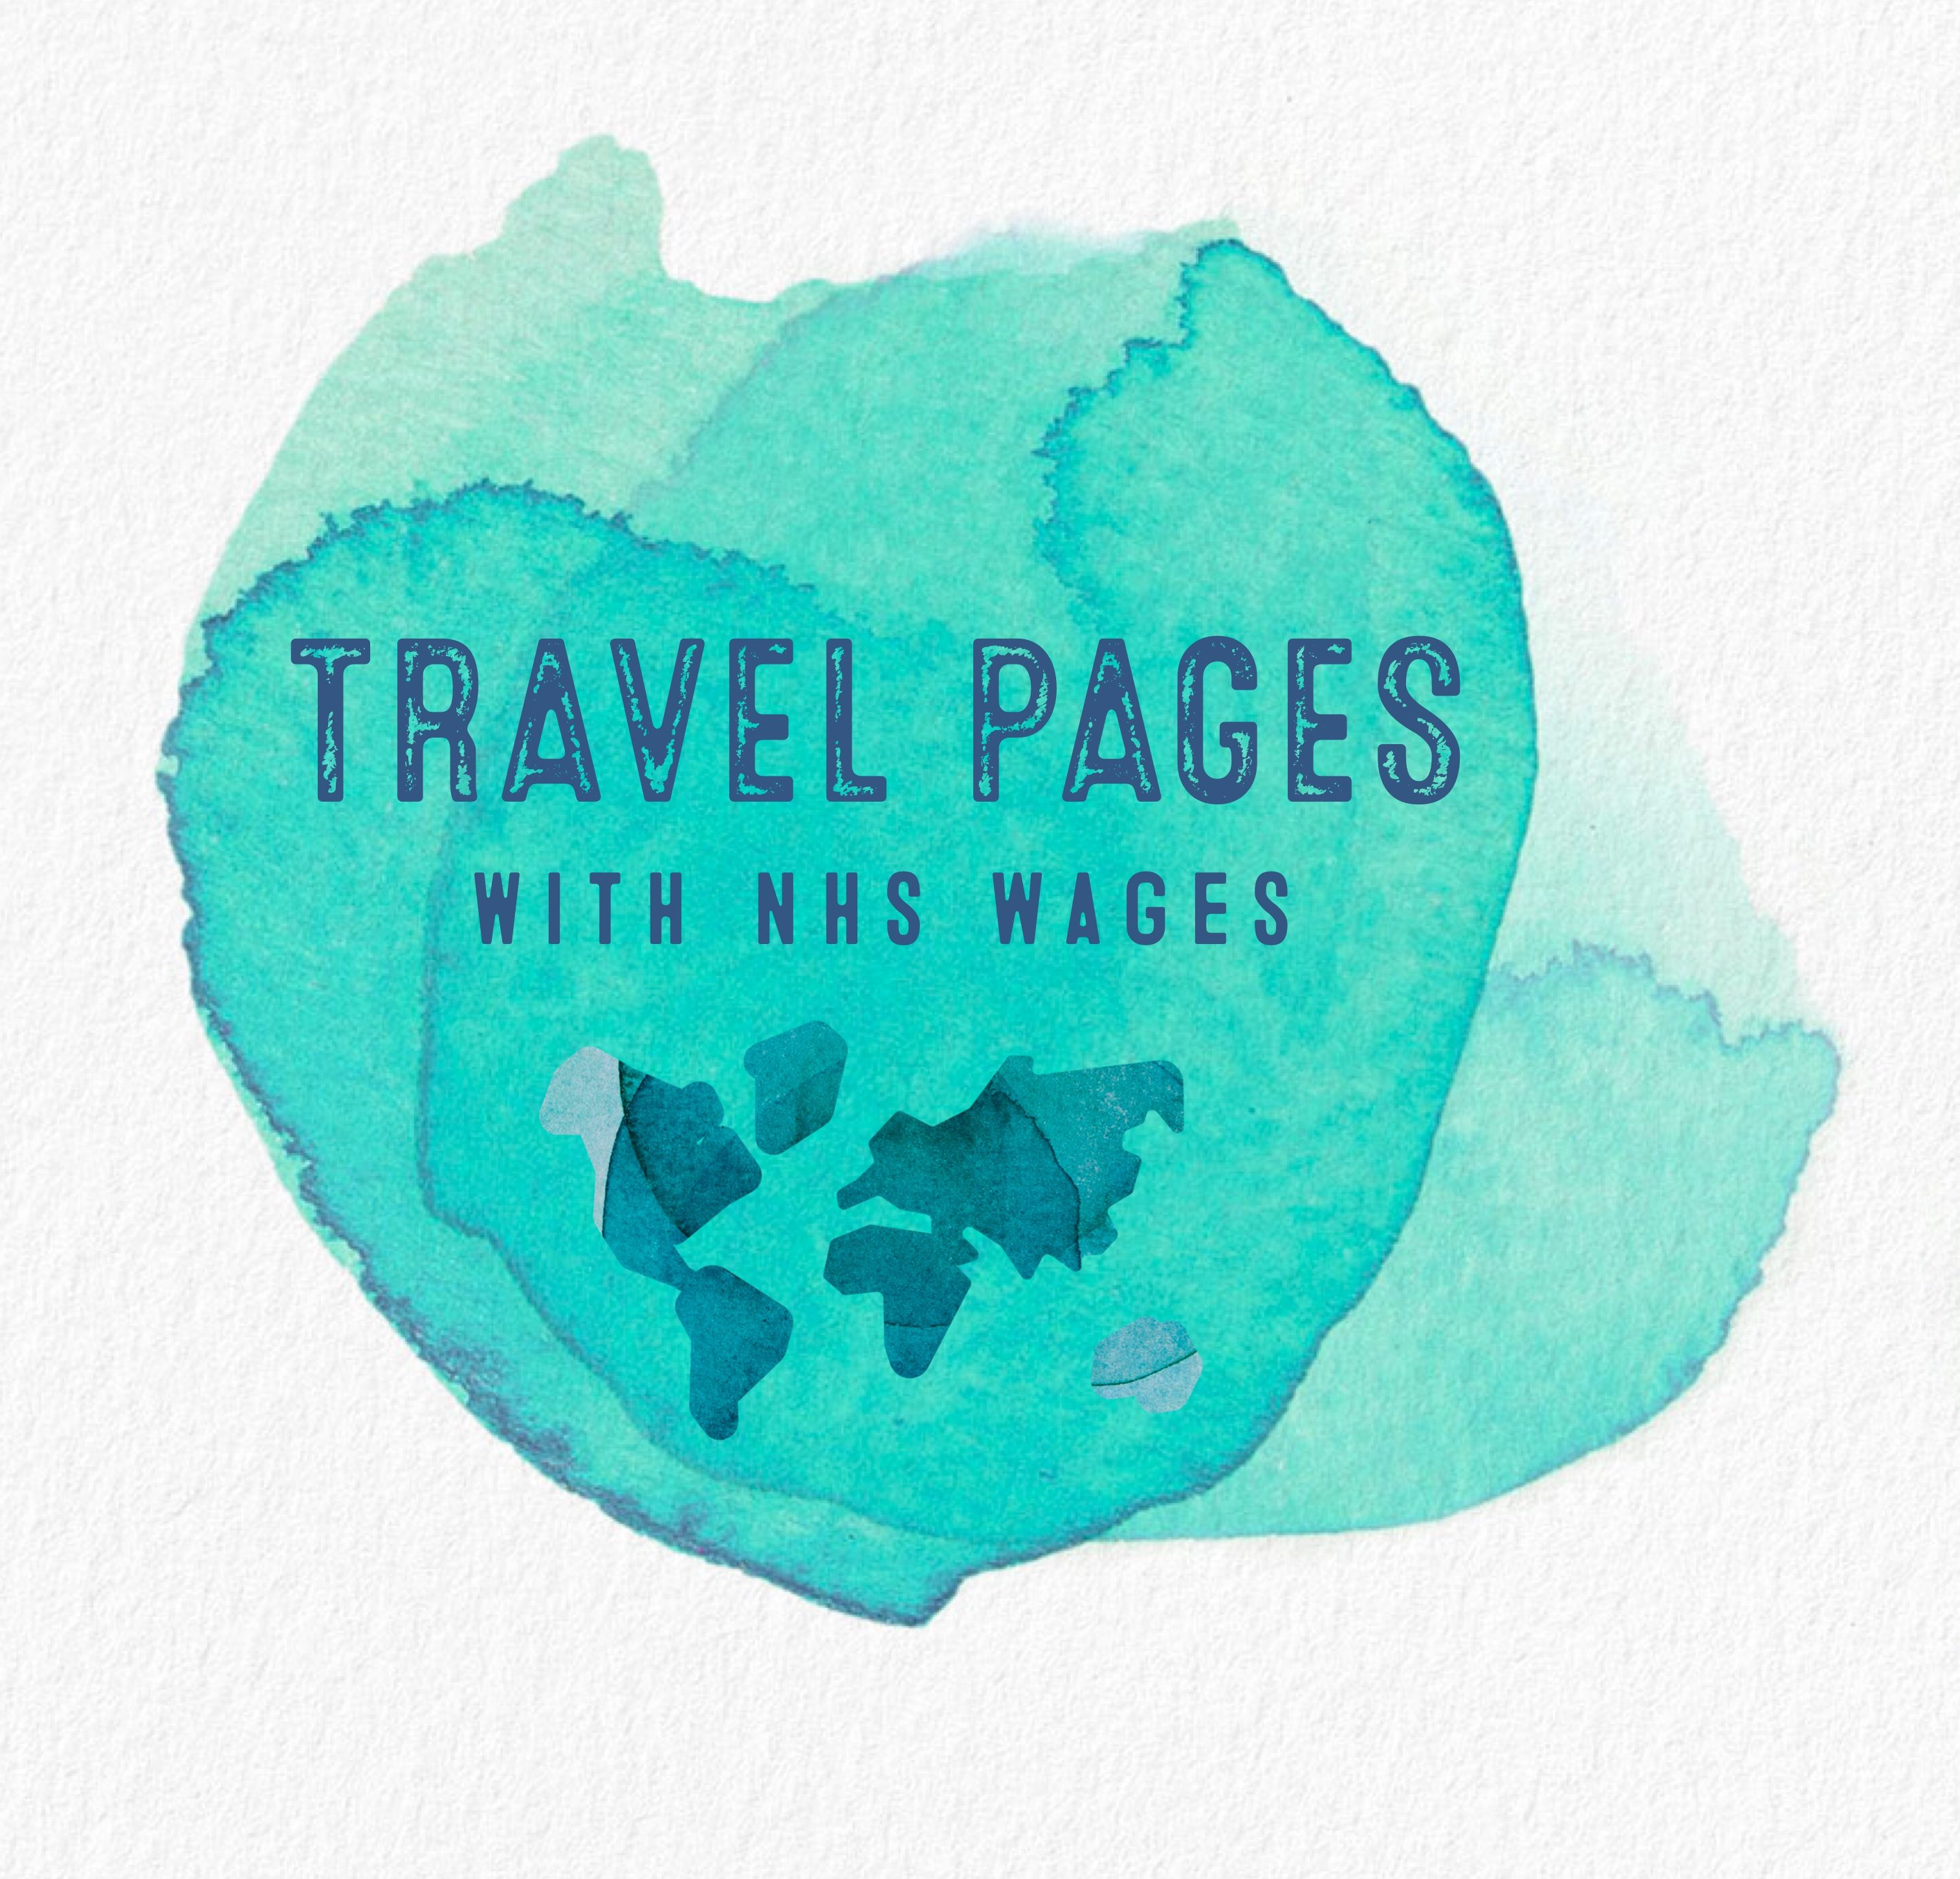 Travel Pages with NHS wages